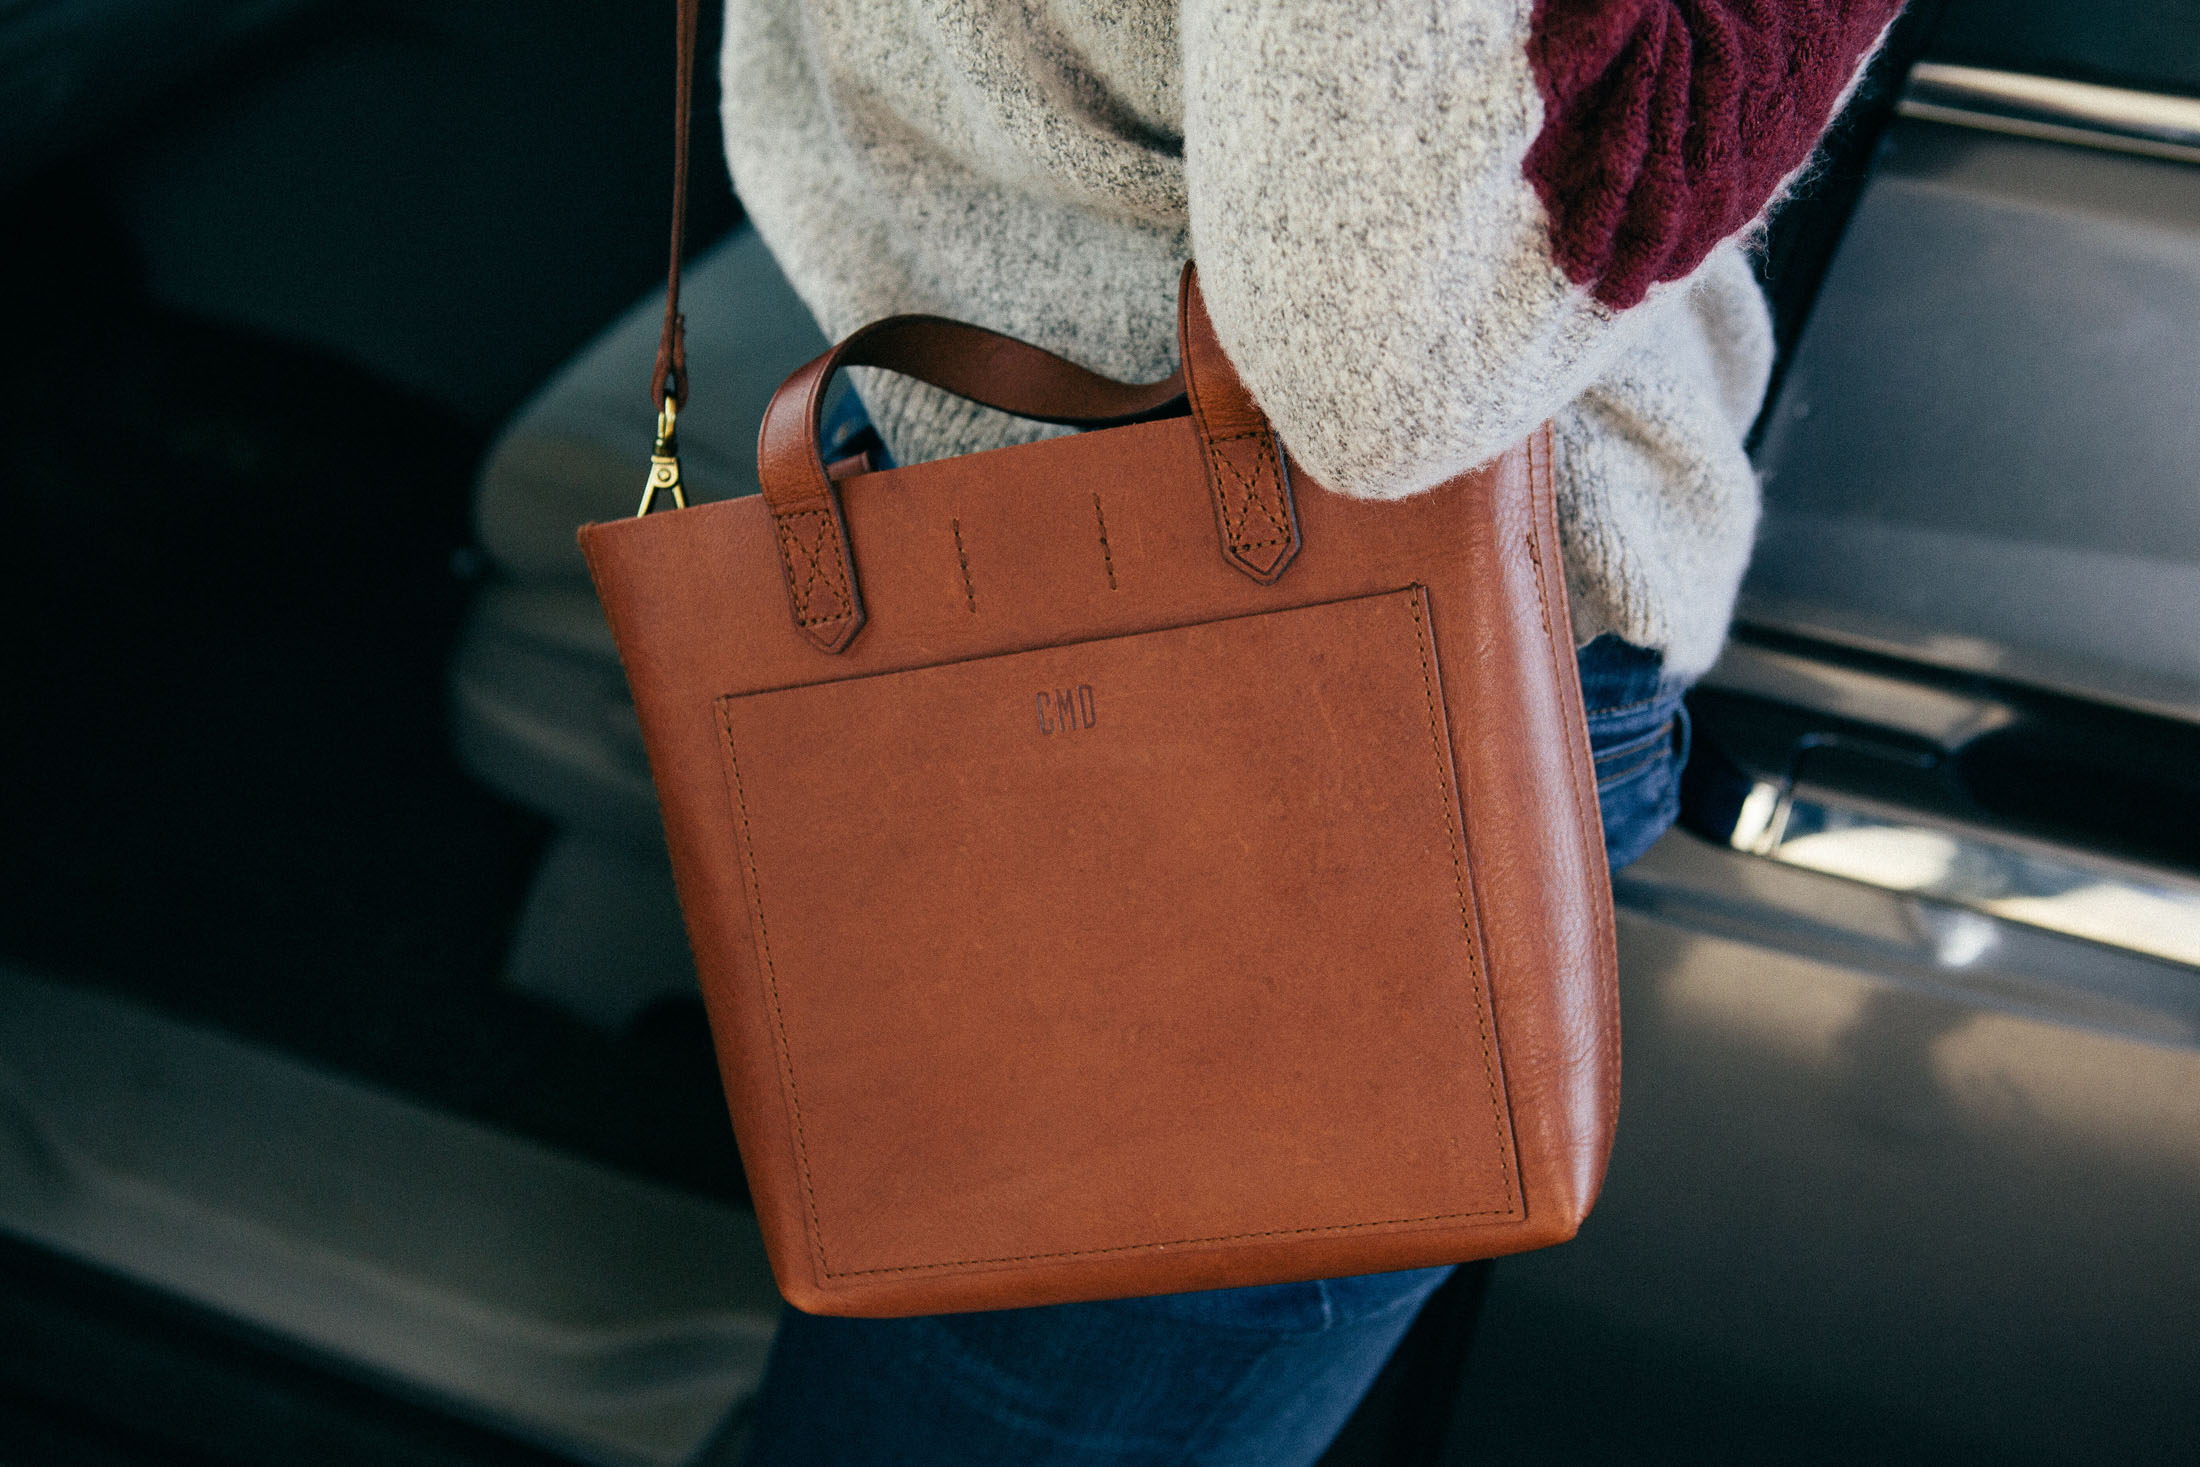 madewell handbag customized